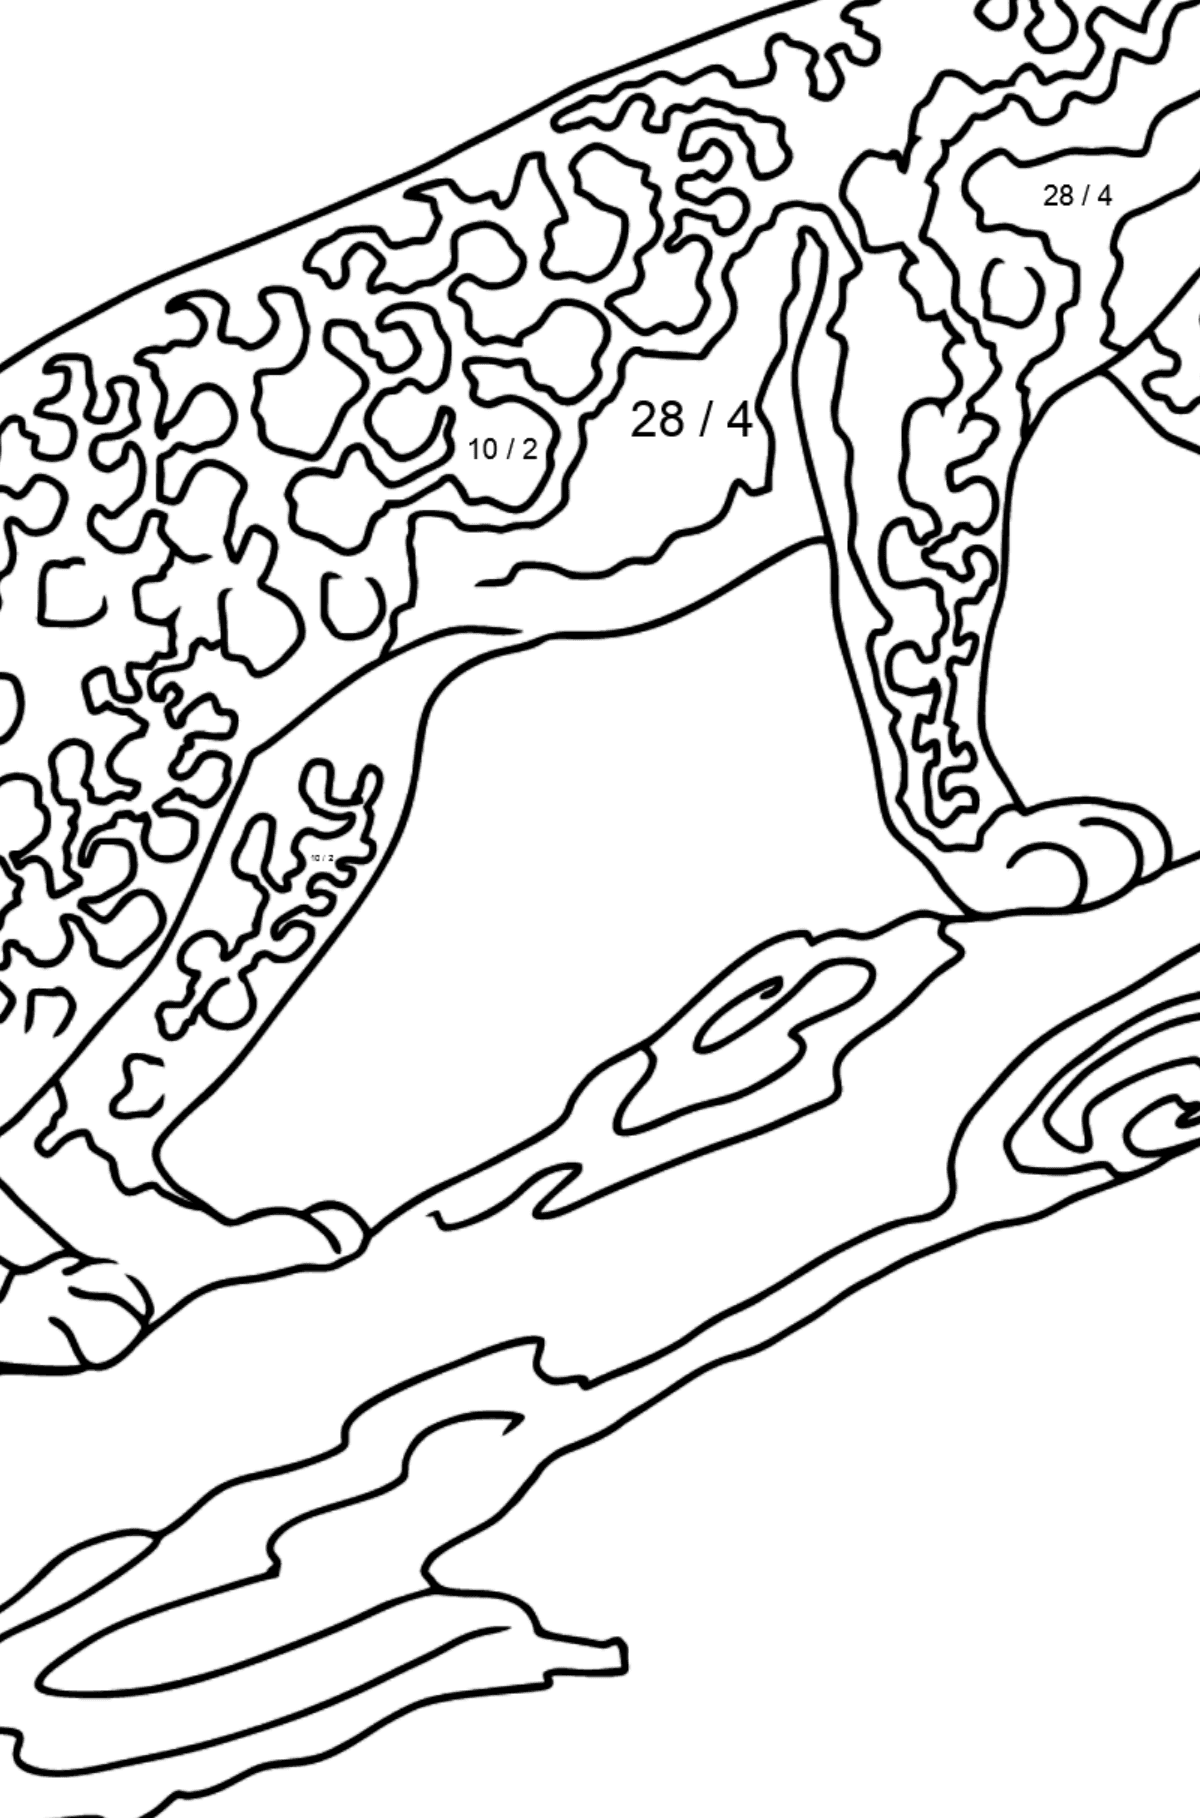 Coloring Page - A Leopard is Getting Ready for a Jump - Math Coloring - Division for Kids